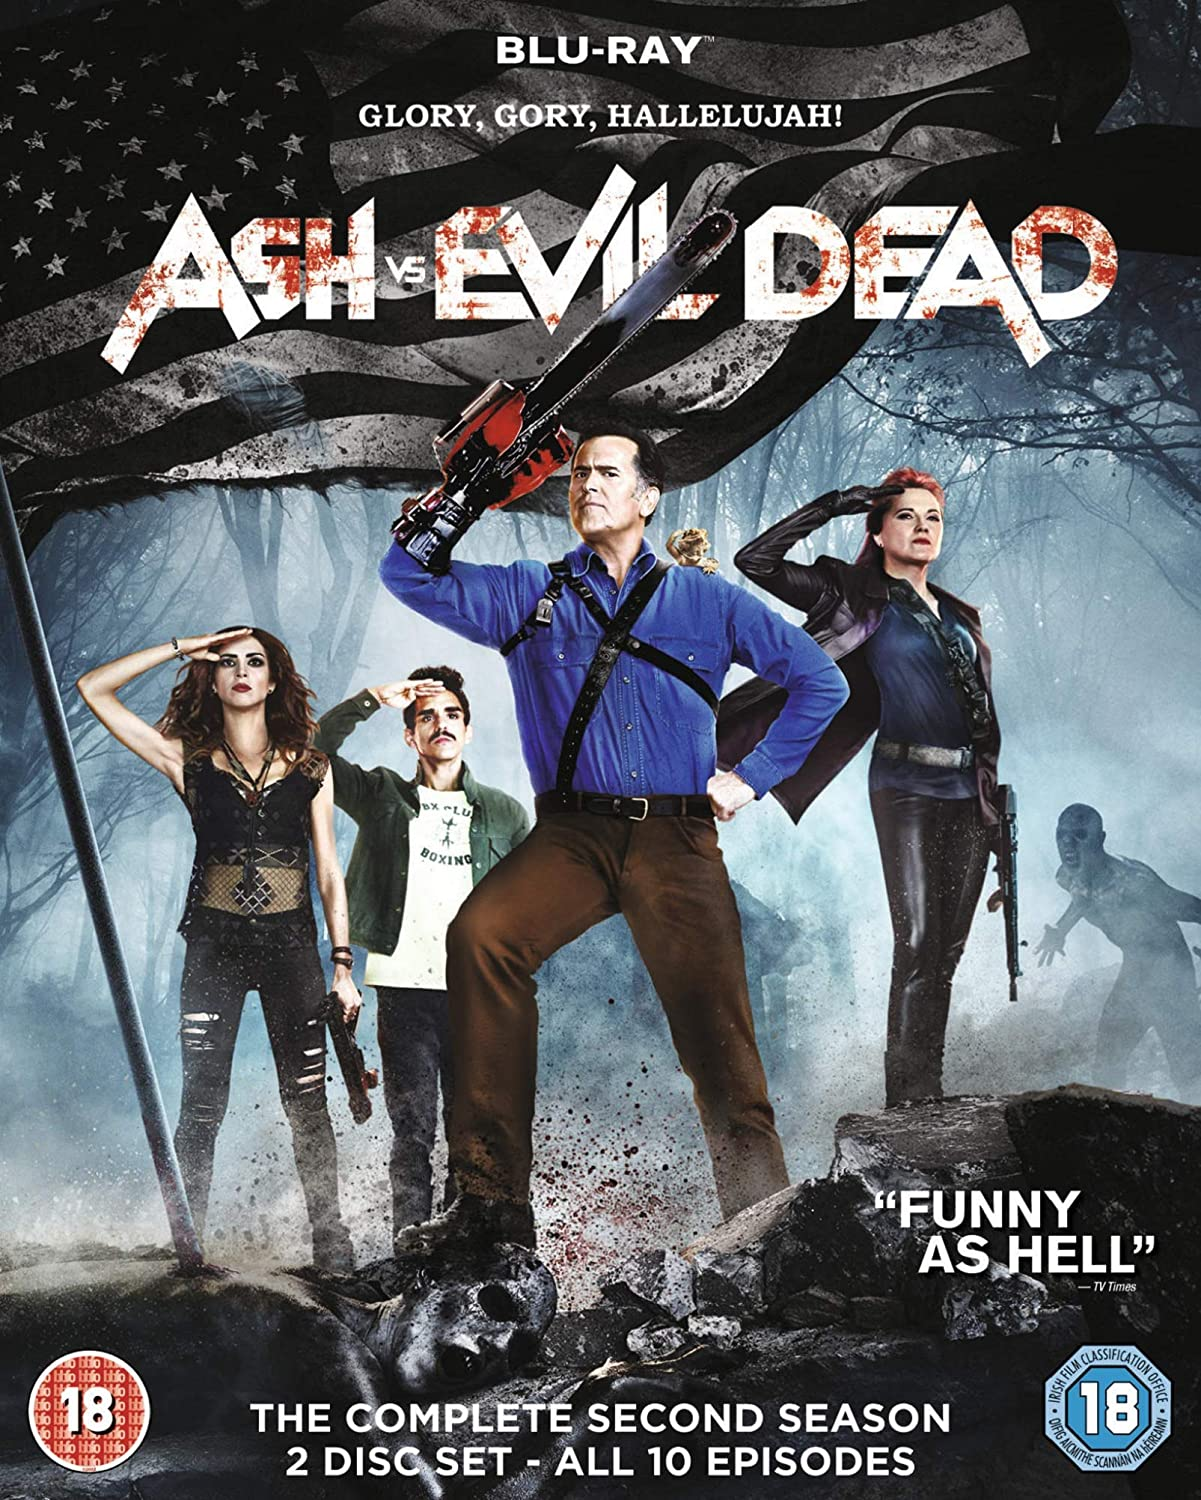 Ash Vs Evil Dead The Complete Second Season Blu Ray Amazon Ca Dvd